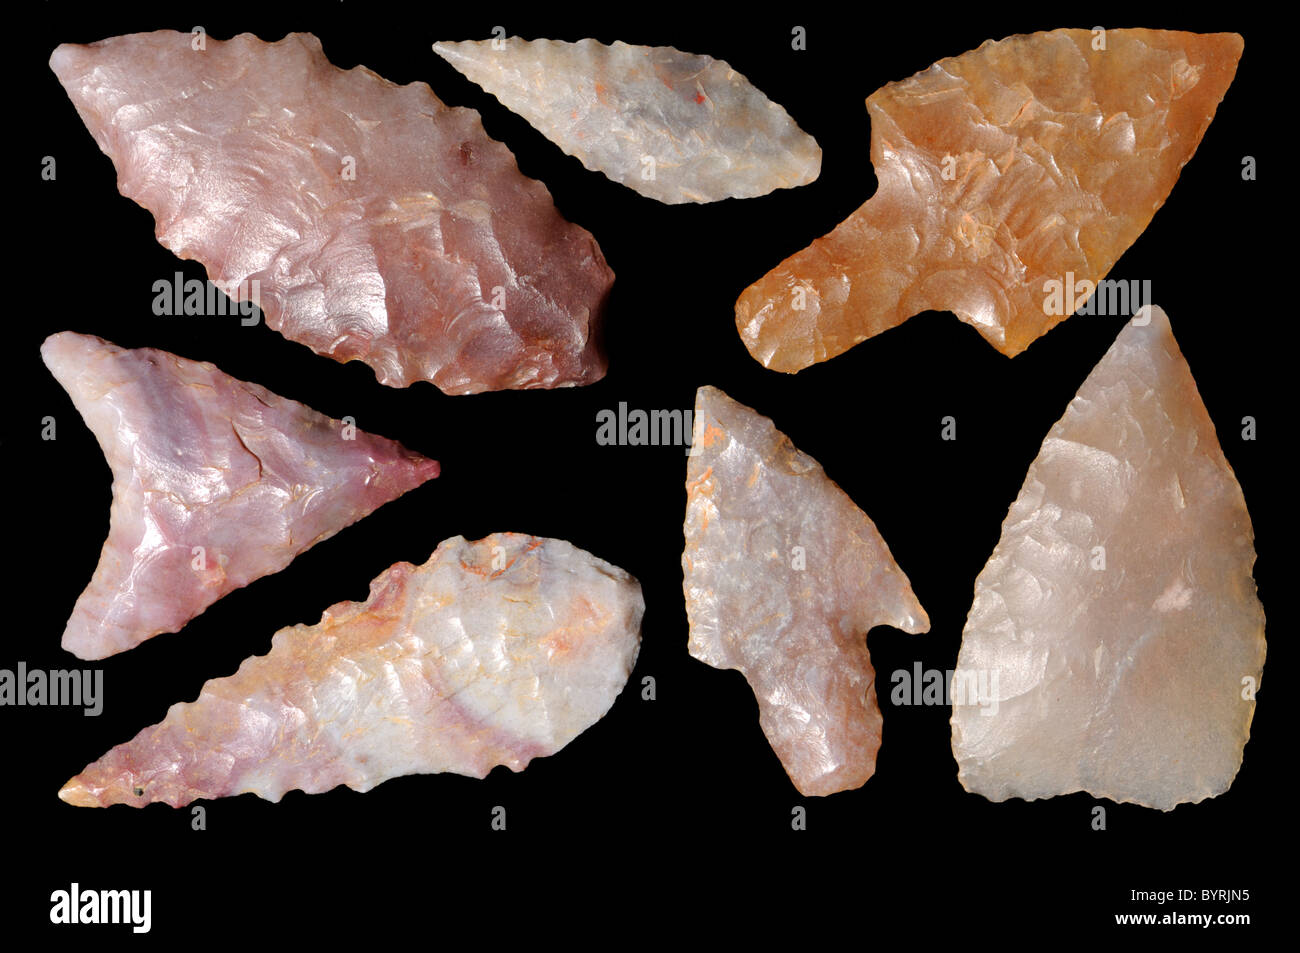 Neolithic flint Arrowheads (c400BC) from the Sahara Dessert - Stock Image